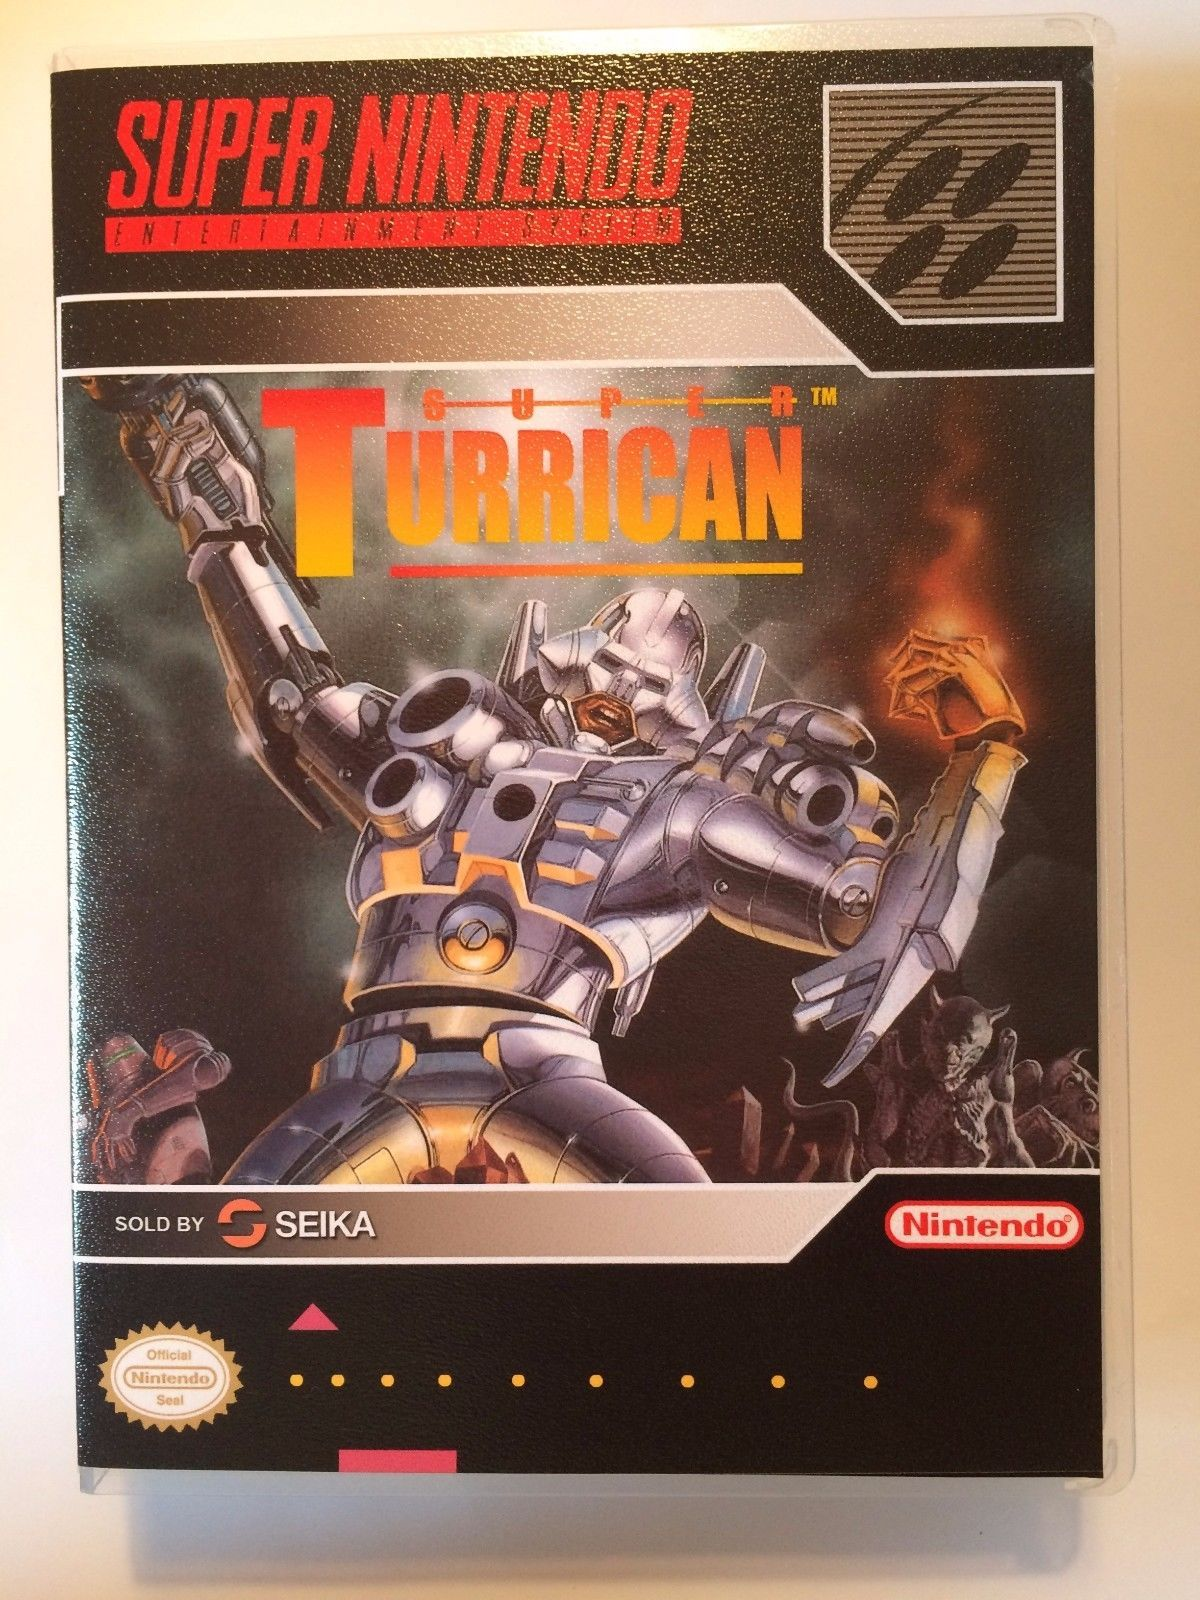 Super Turrican - Super Nintendo - Replacement Case - No Game